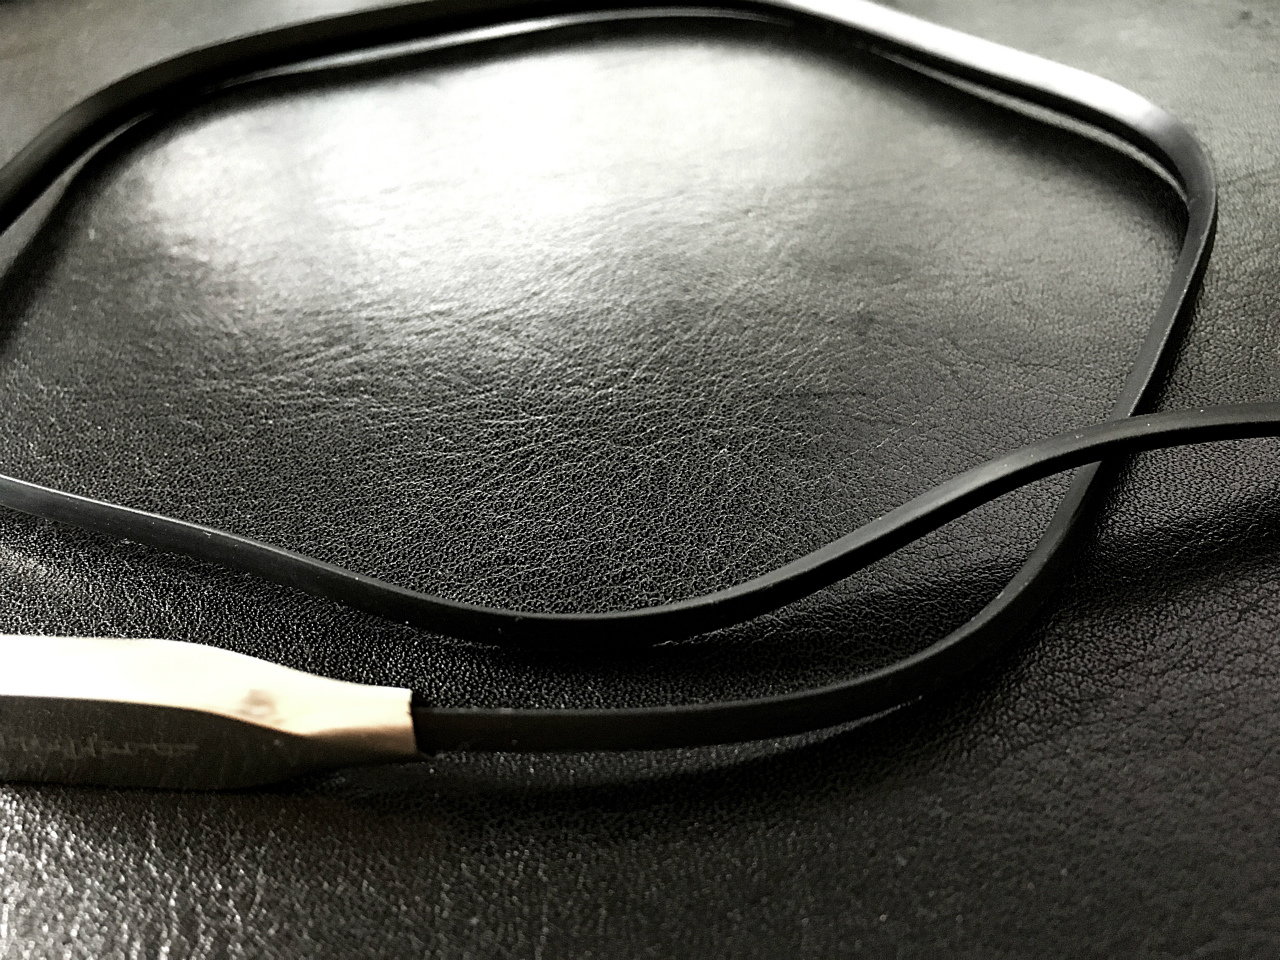 pr-anypro-microusb-cable-06